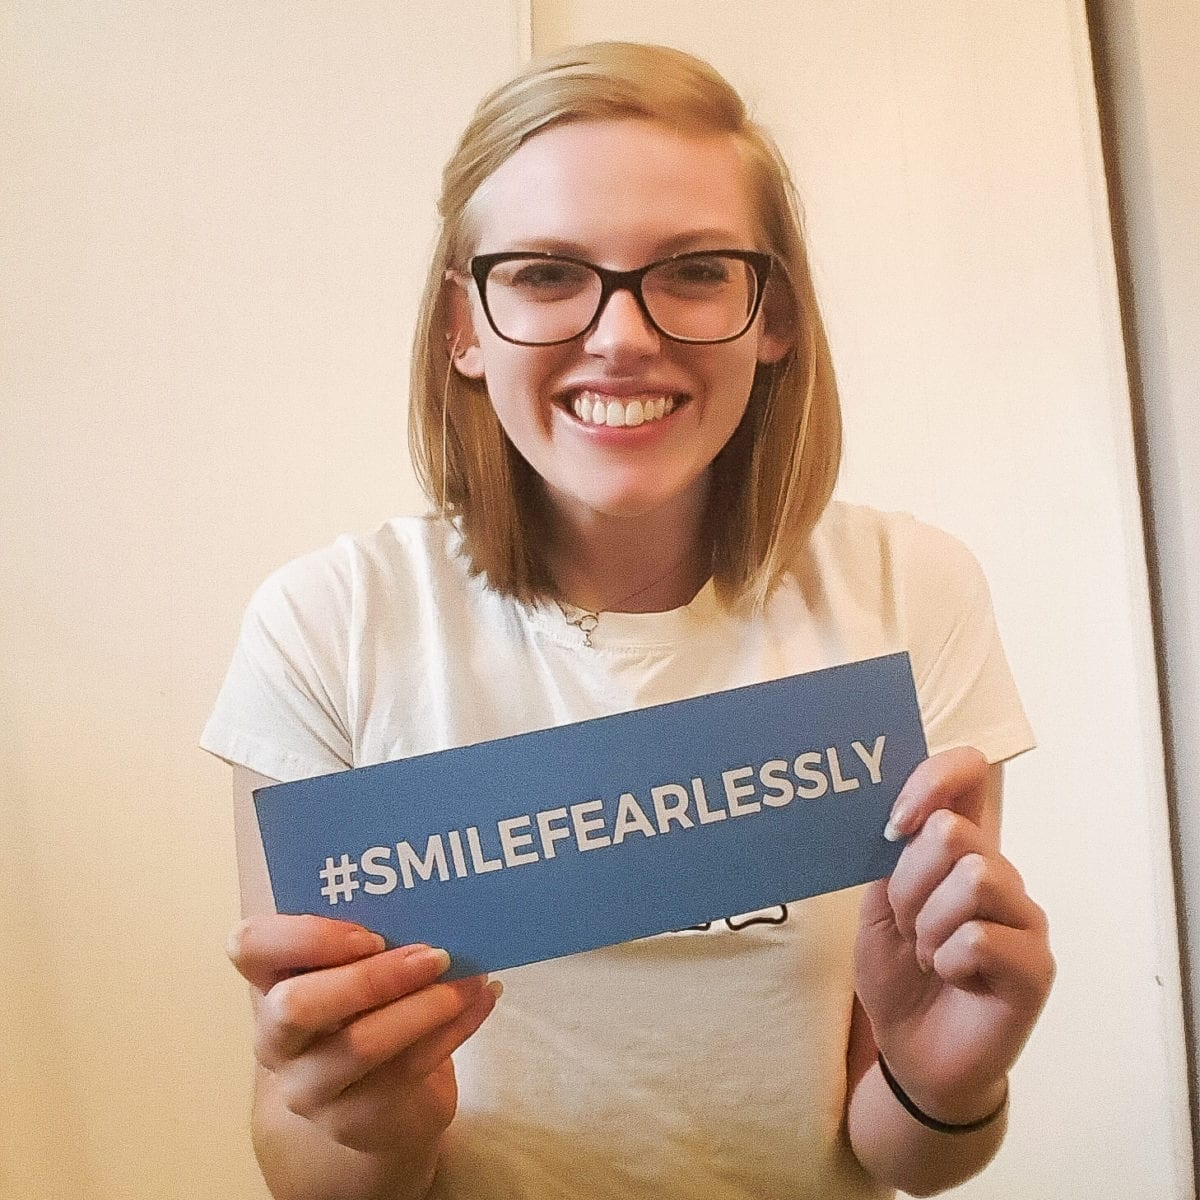 Get A Bright Smile | Teeth Whitening for Self-Care